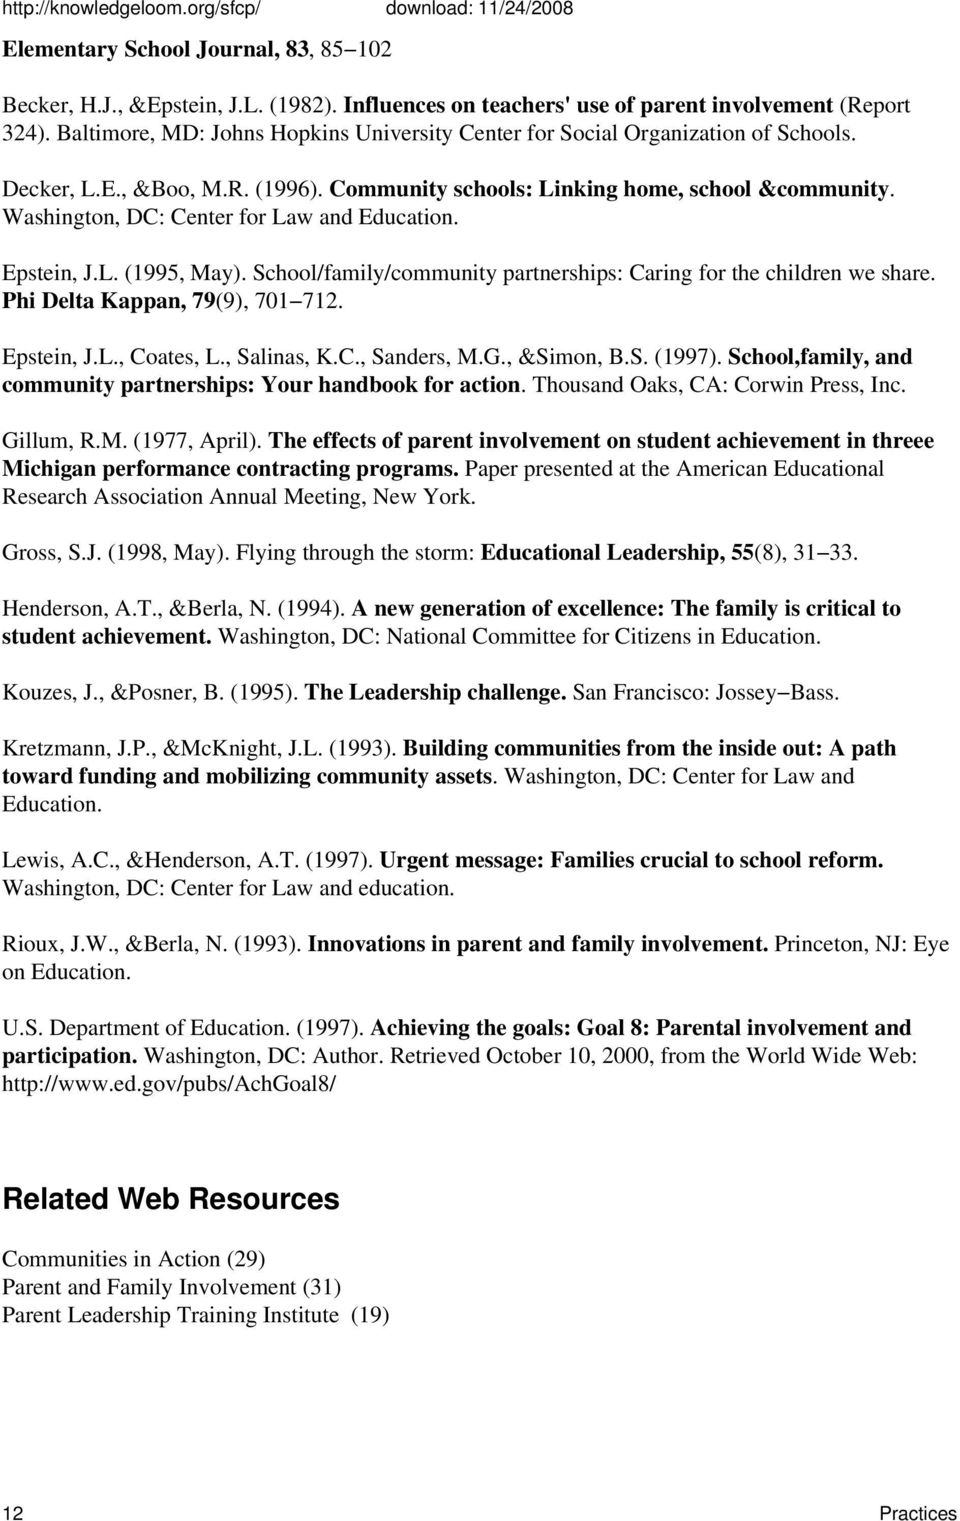 Washington, DC: Center for Law and Education. Epstein, J.L. (1995, May). School/family/community partnerships: Caring for the children we share. Phi Delta Kappan, 79(9), 701 712. Epstein, J.L., Coates, L.